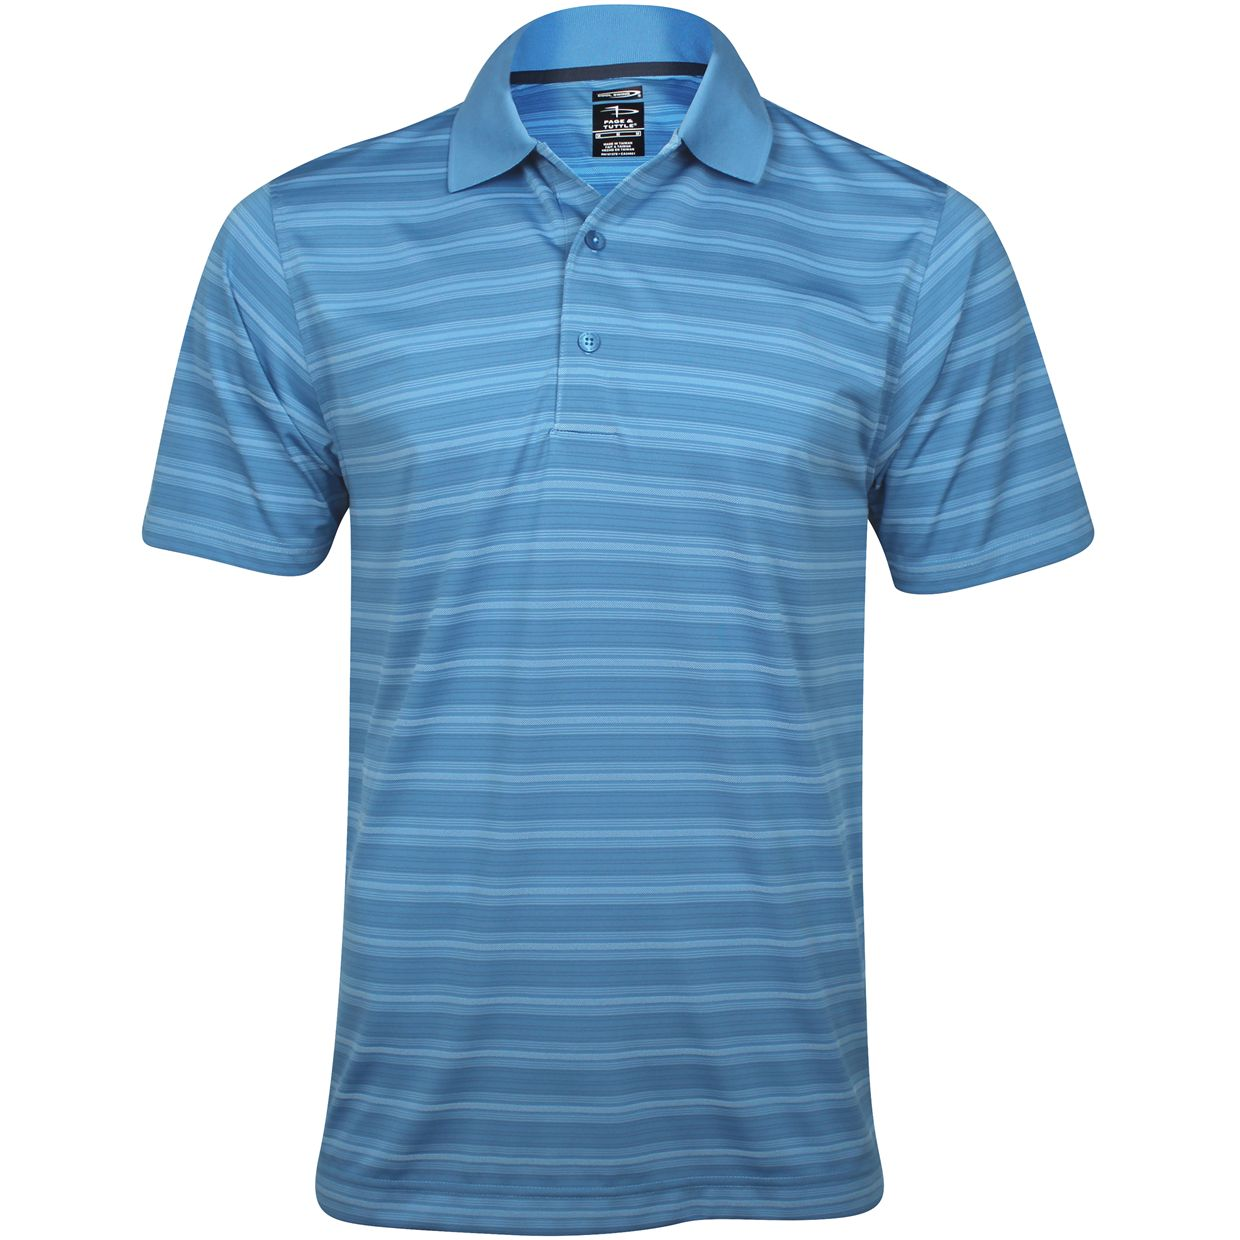 Golf Apparel Clothing At